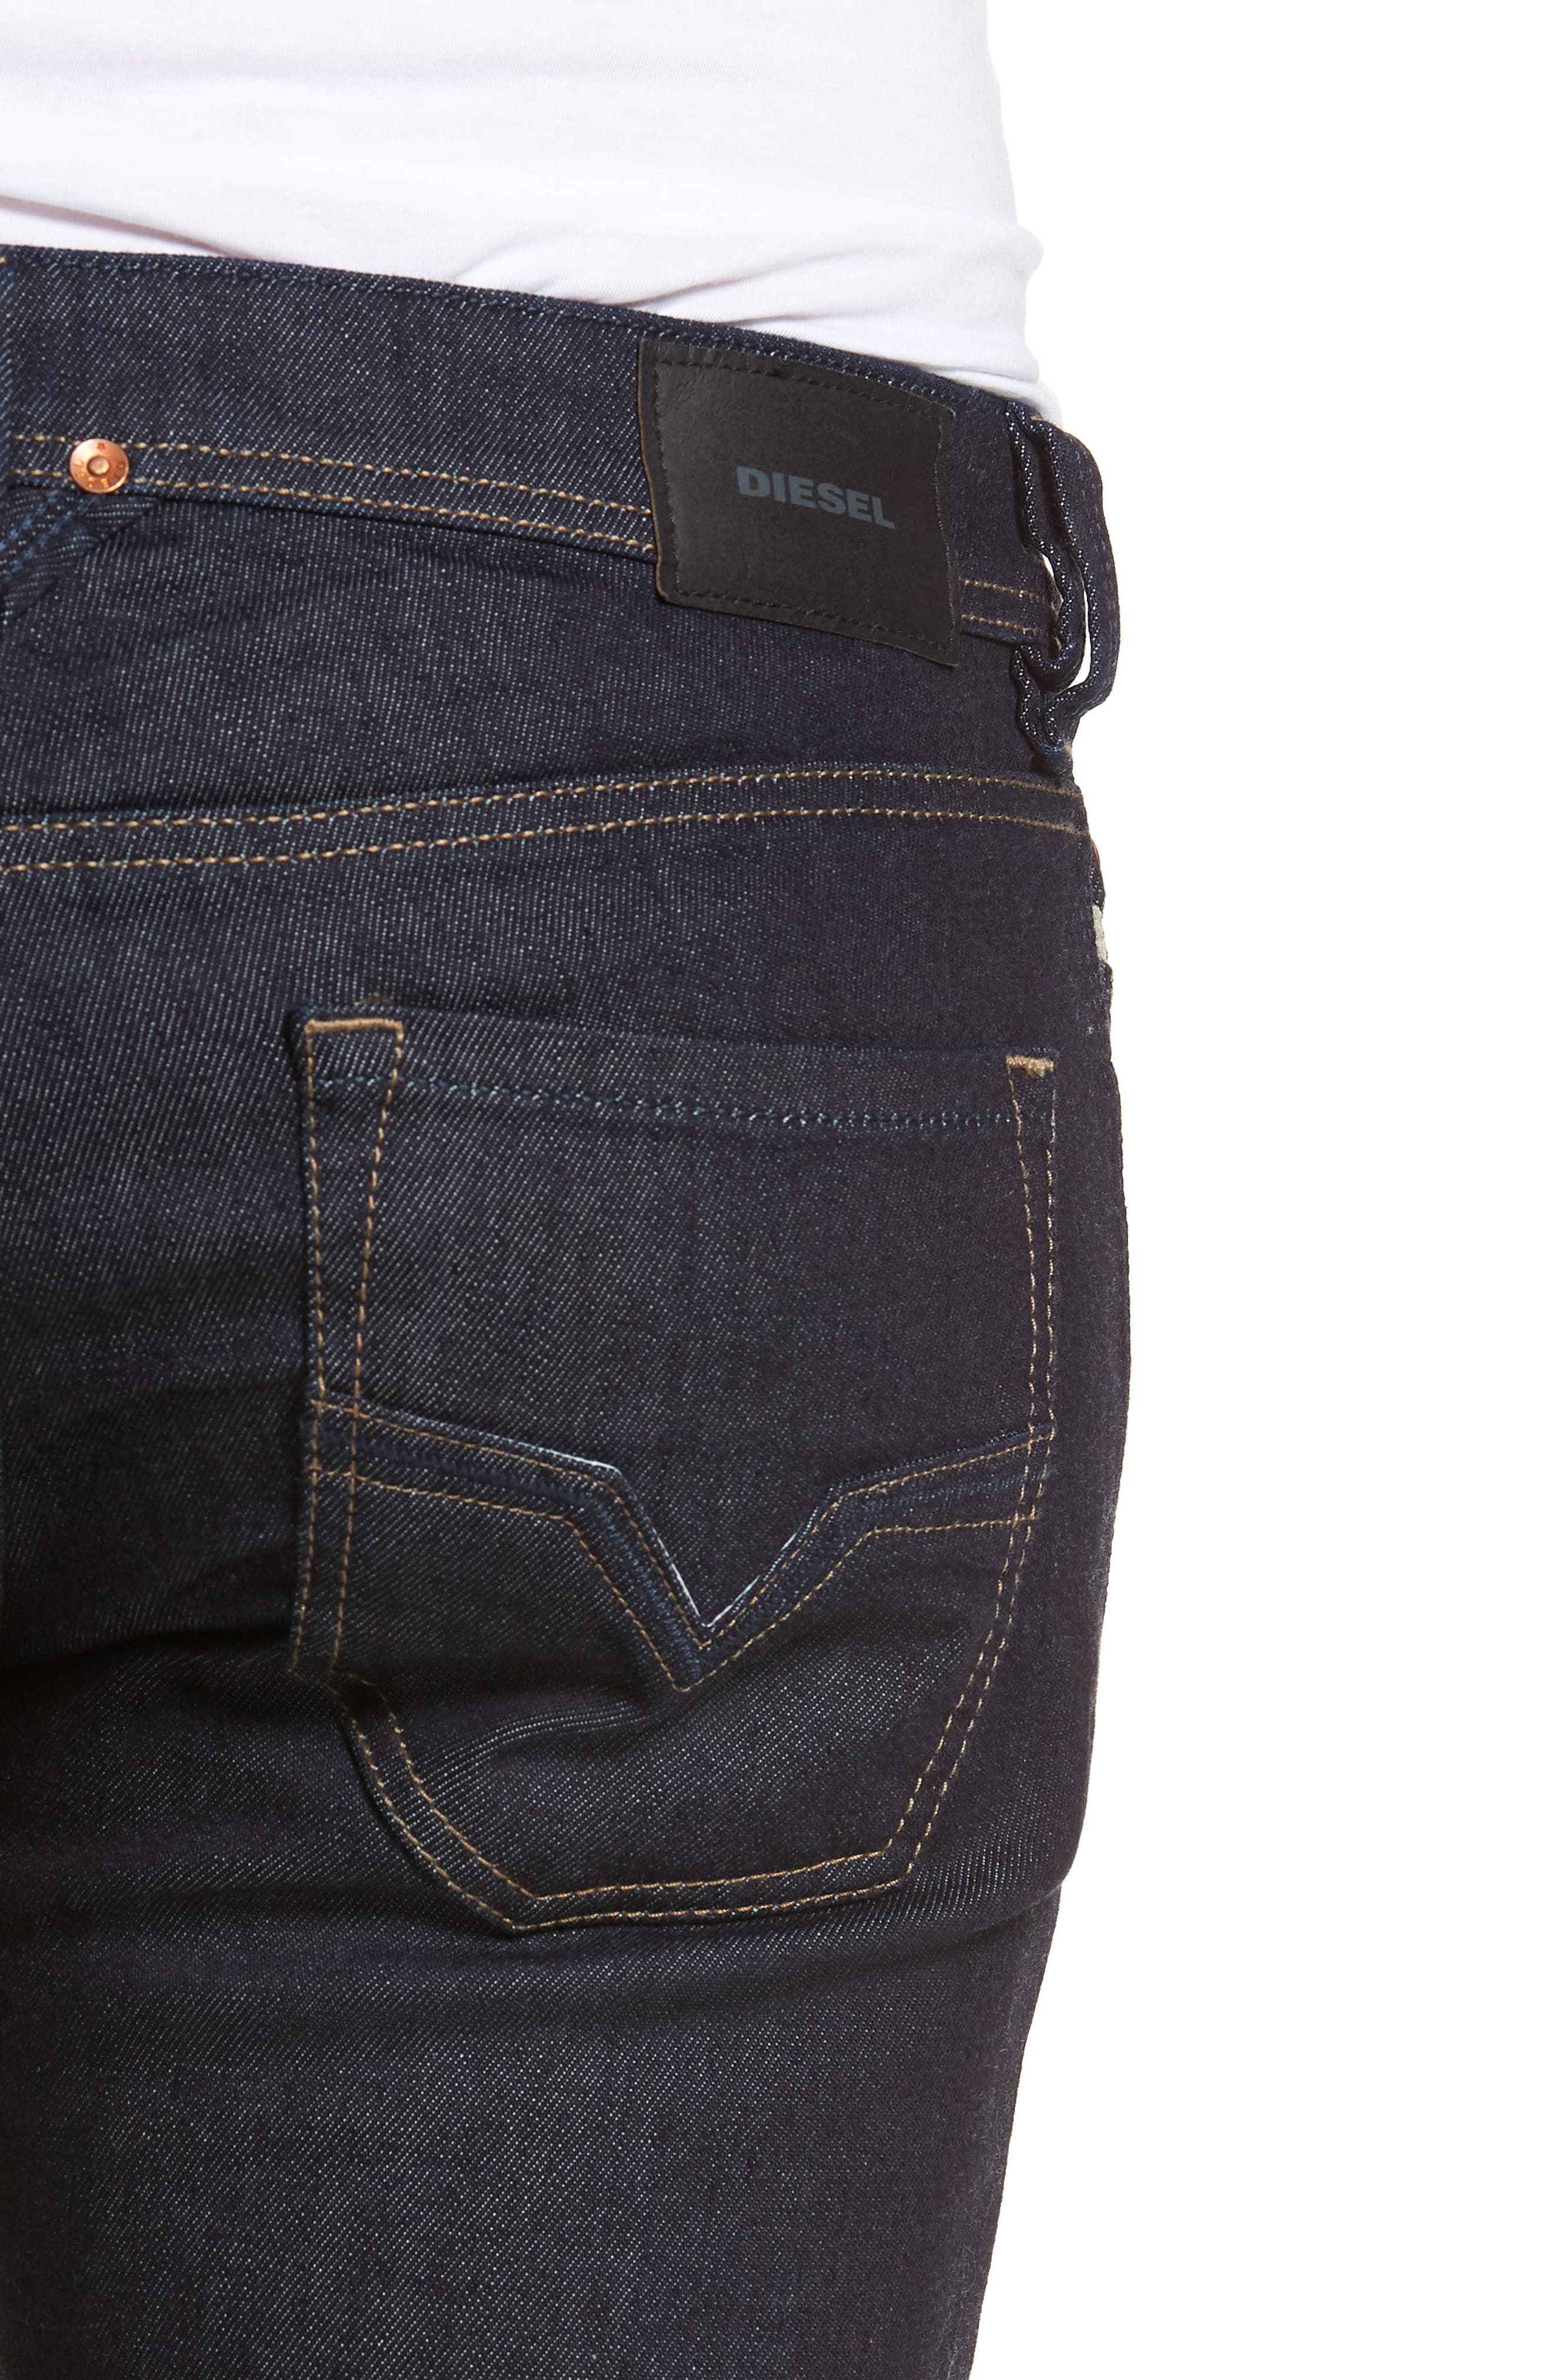 Larkee Relaxed Fit Jeans,                             Alternate thumbnail 4, color,                             Blue